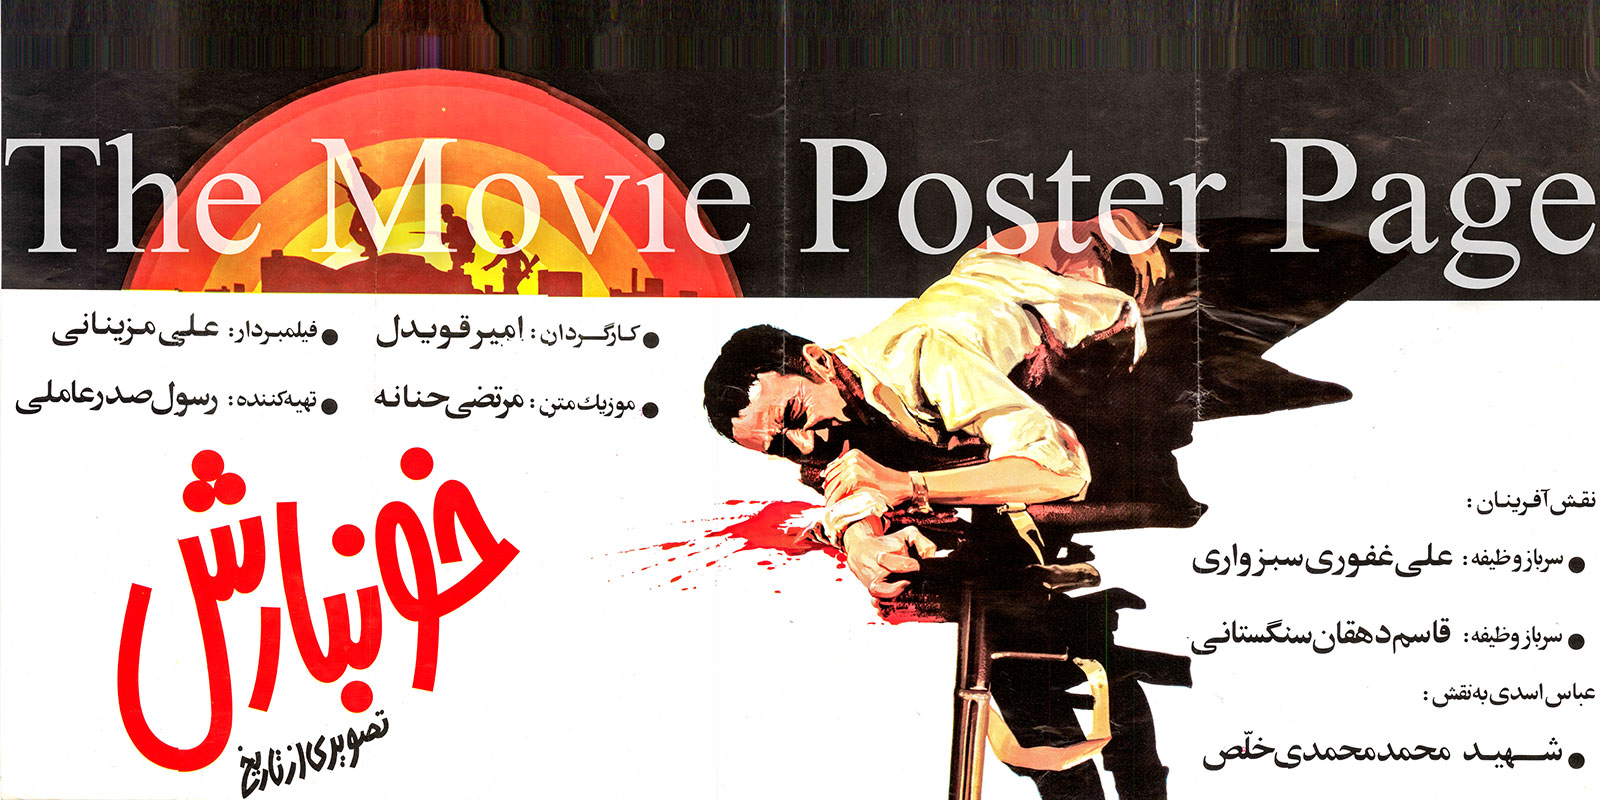 Pictured is an Iranian promotional poster for the 1980 Amir Ghavidel film Bloodbath starring Ali Ghafoori.